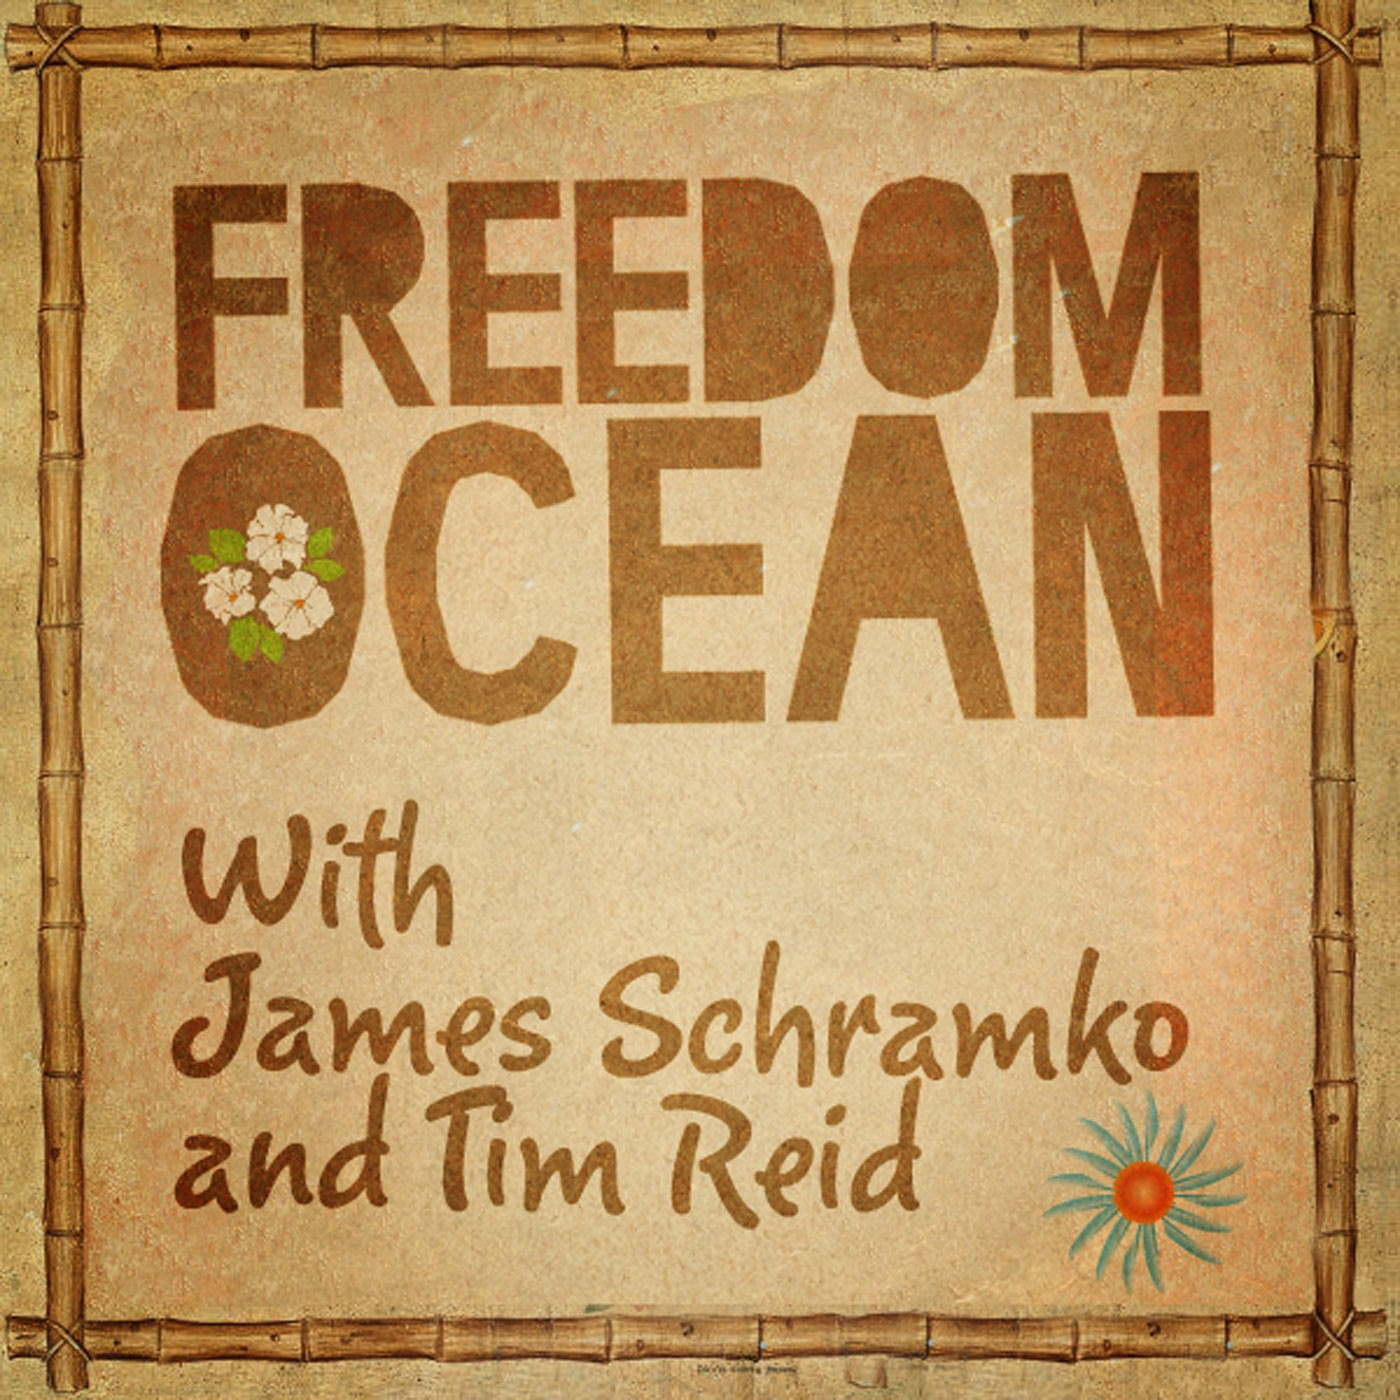 Freedom Ocean Internet Marketing with James Schramko and Tim Reid | Internet Business | Online Marketing Podcast